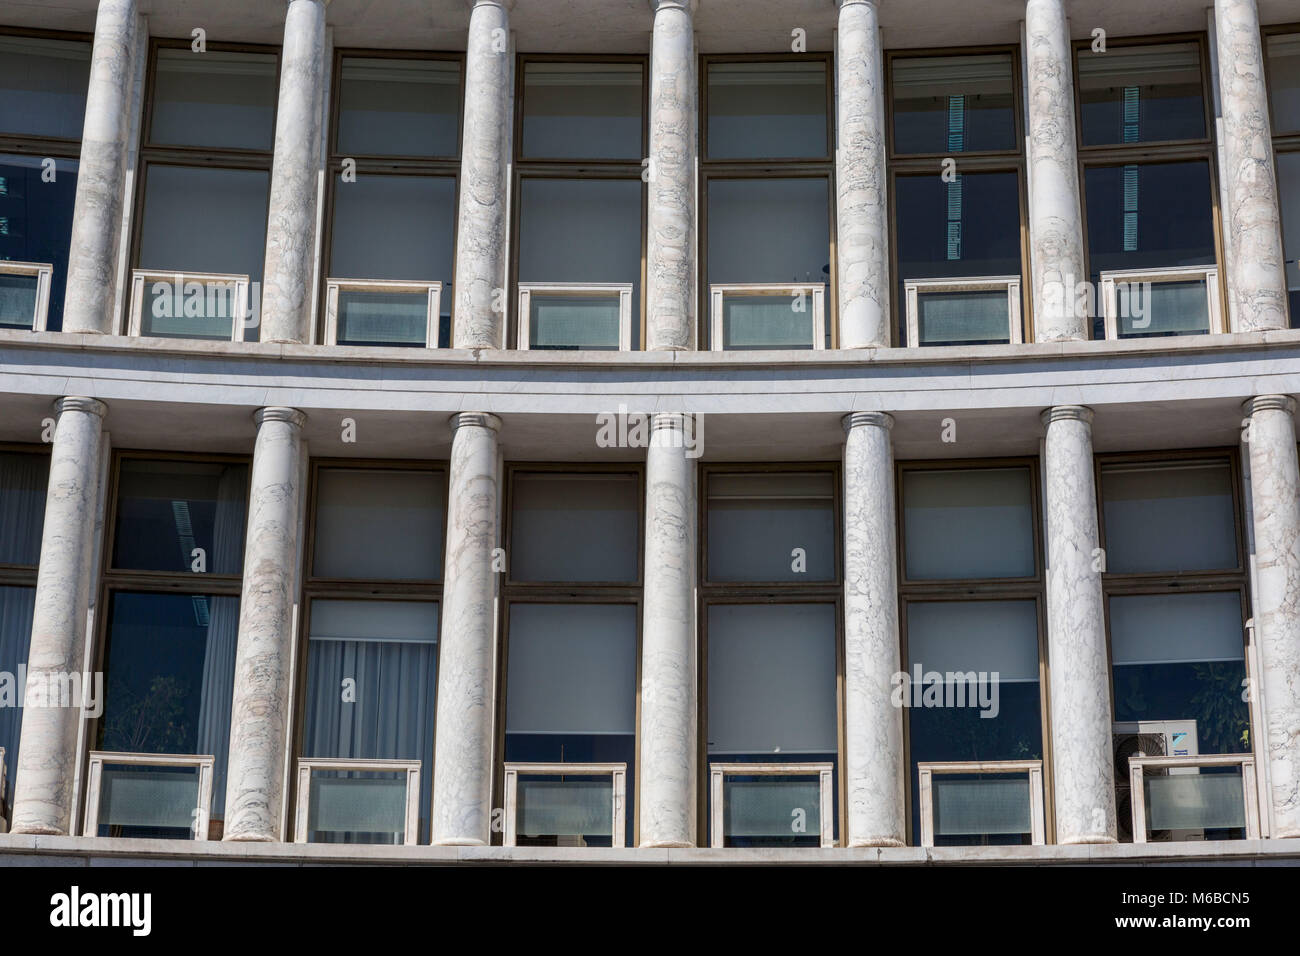 Architecture at EUR district Rome - Stock Image